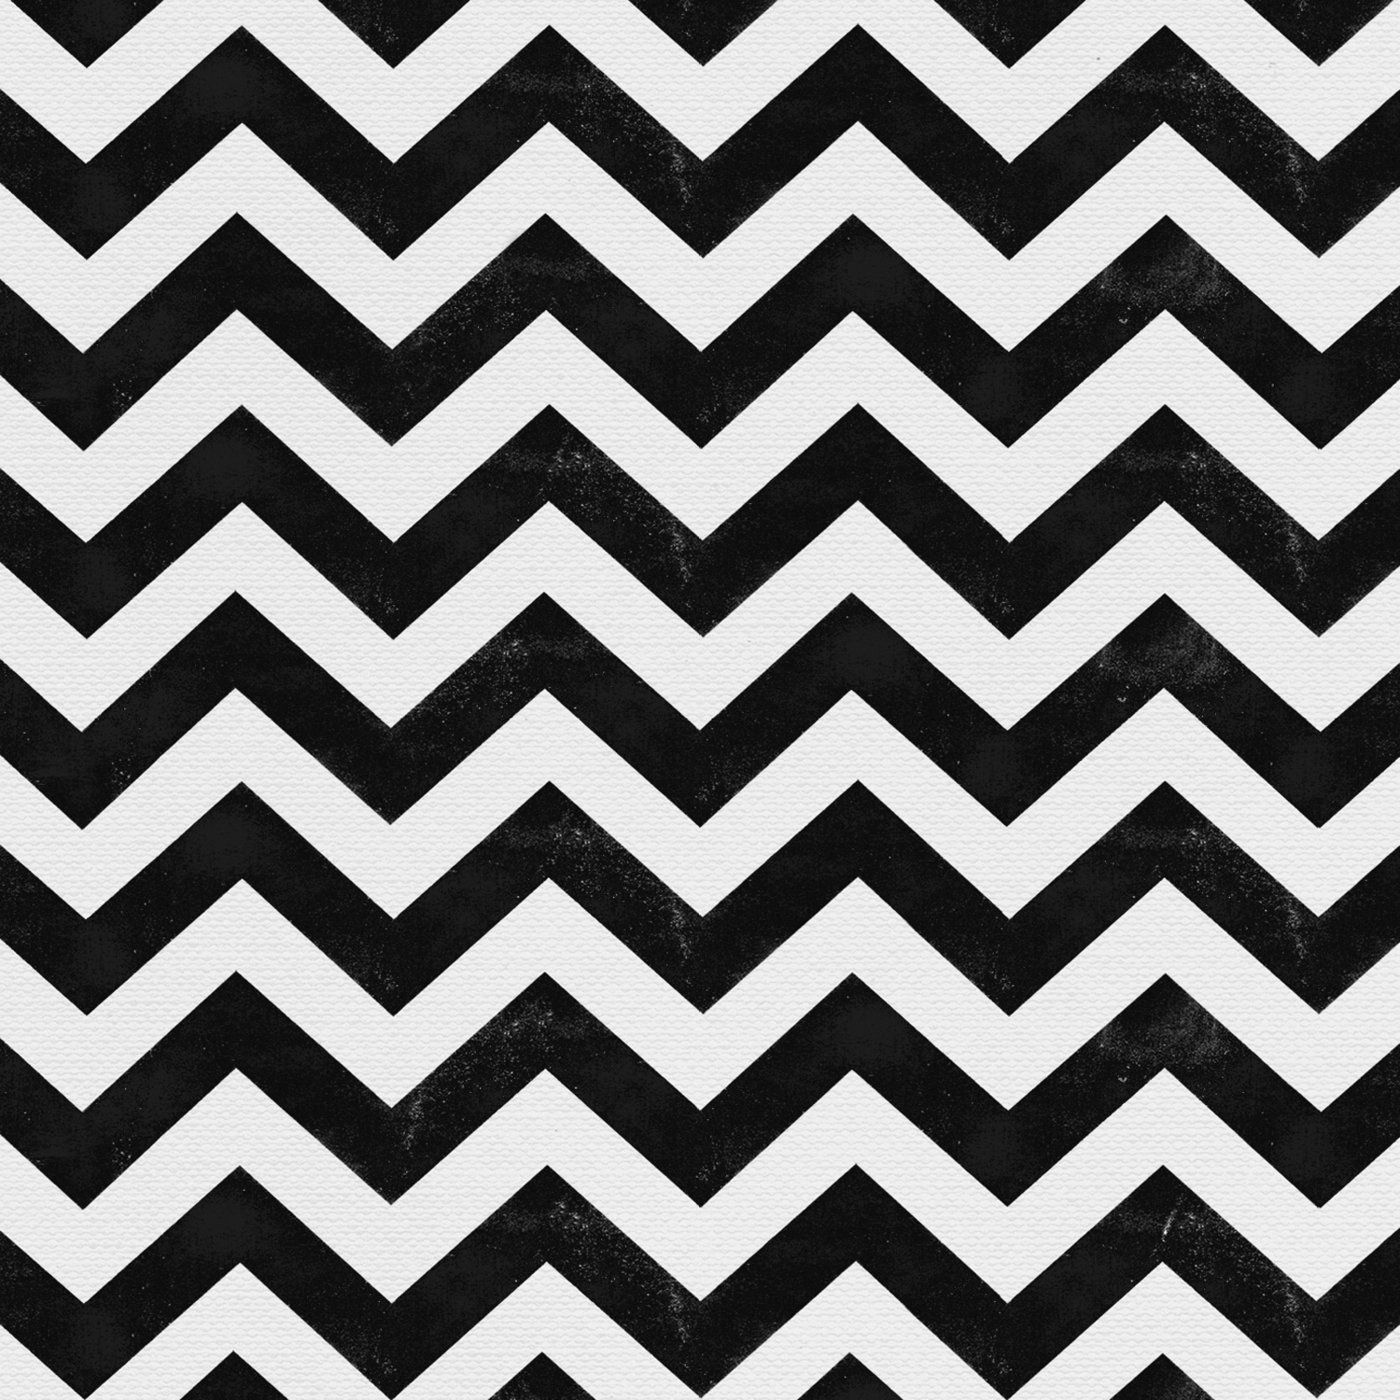 GLASVEGAS - Later...When the TV turns to static (2013)